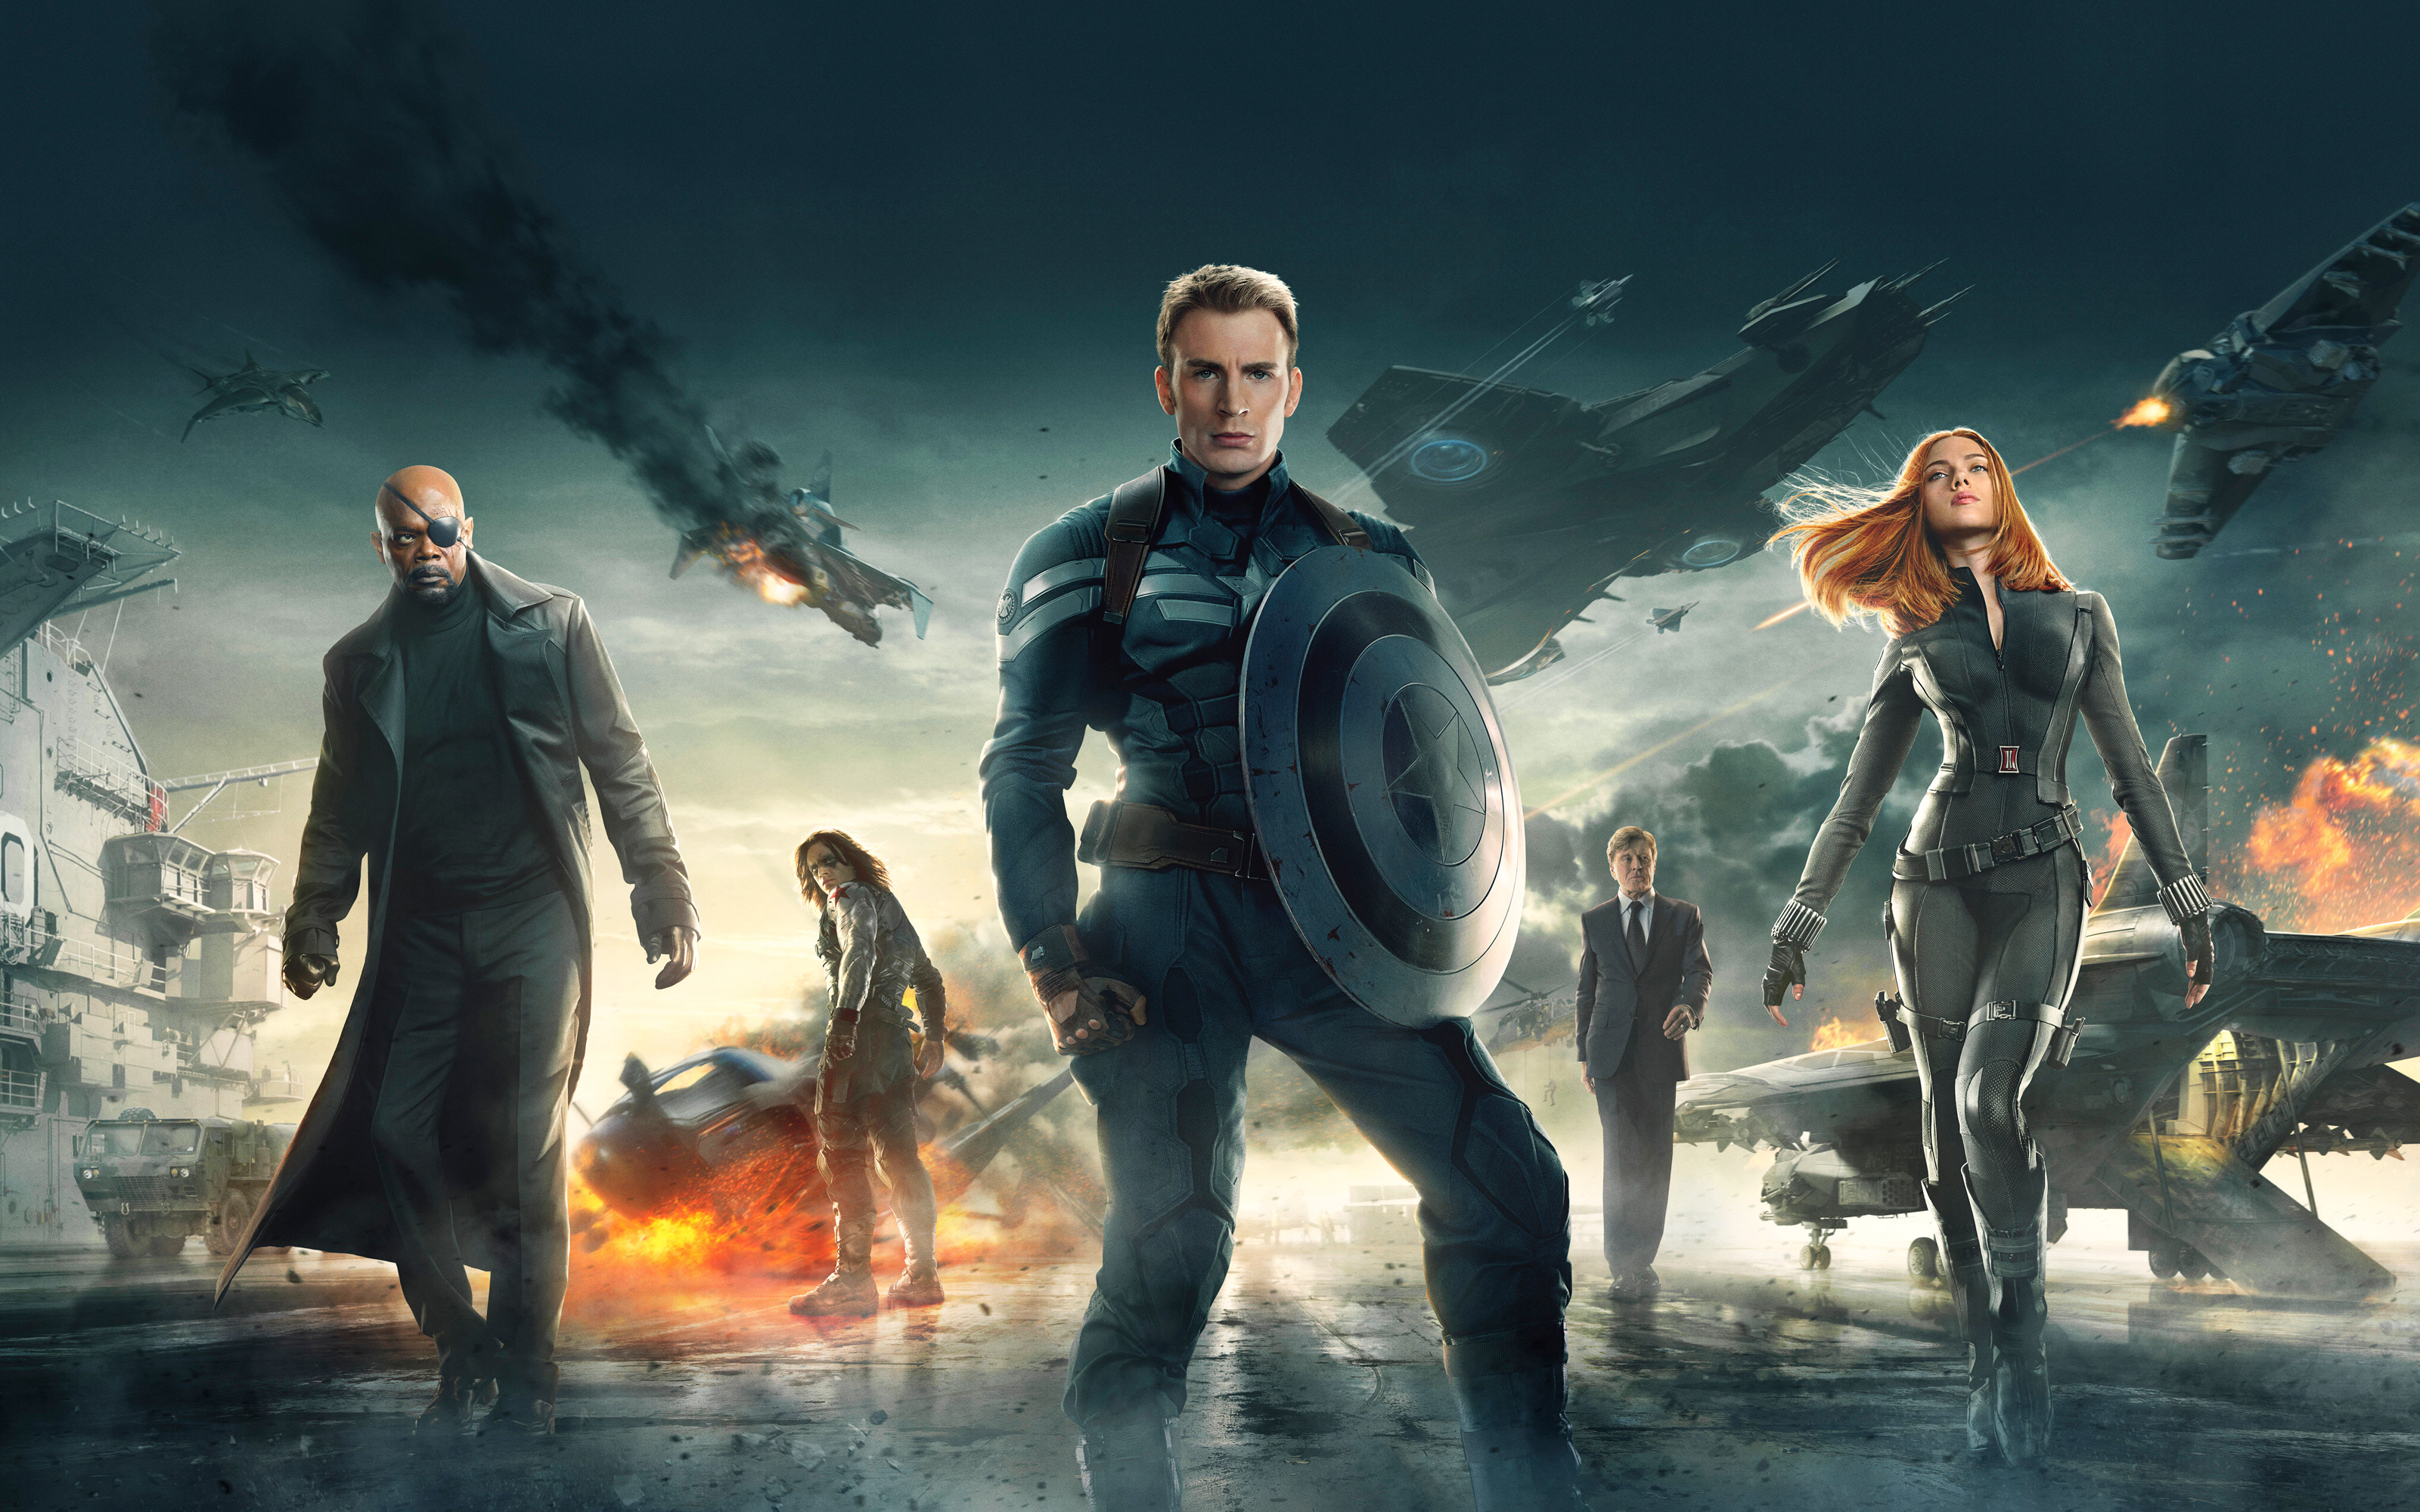 Captain America: The Winter Soldier - Extras